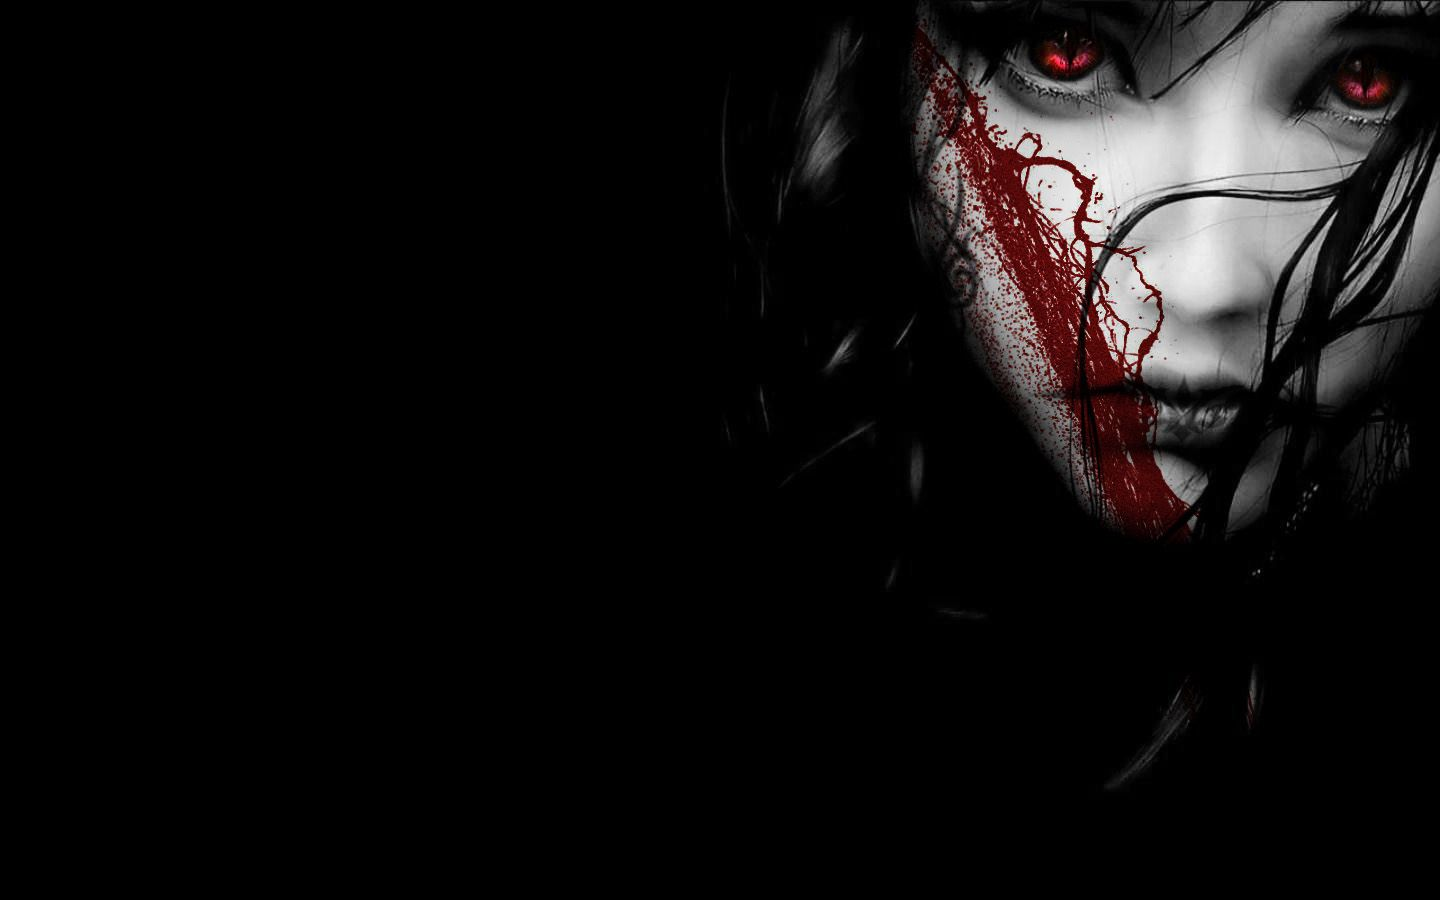 Hd wallpaper evil - Find This Pin And More On Demonicangel Dark Evil Woman Wallpaper